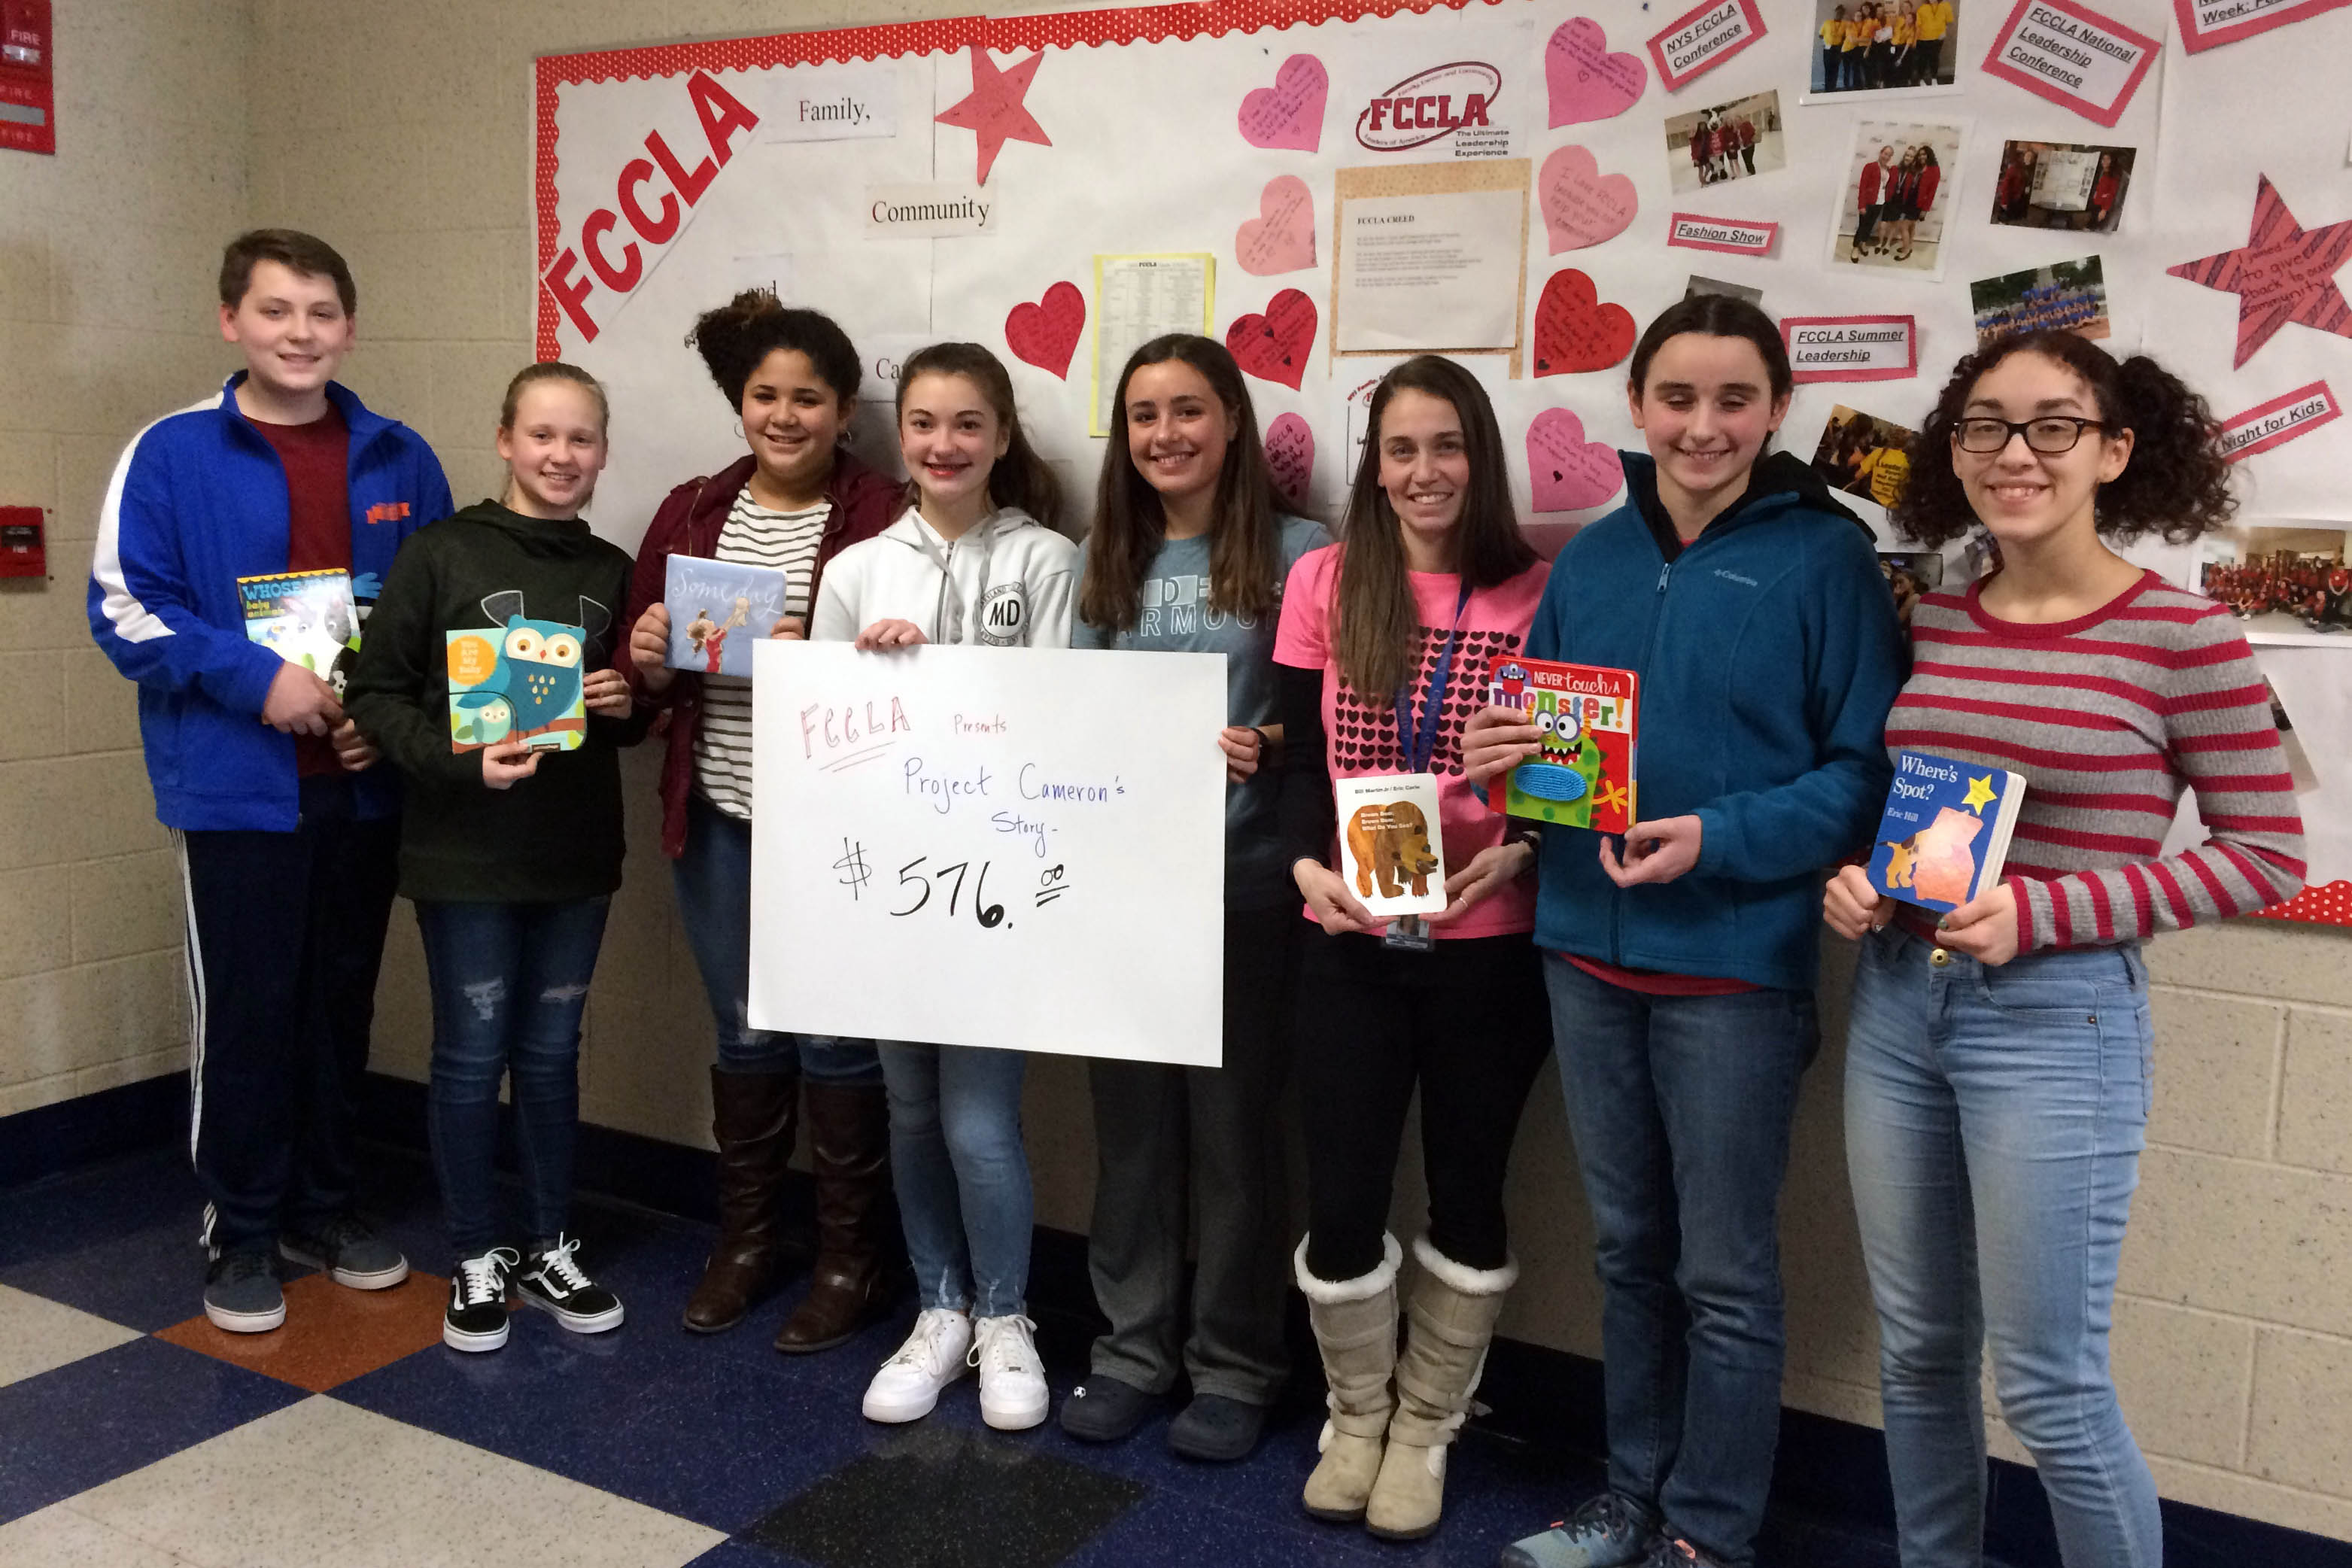 FCCLA representatives Christopher Konsul, Kaelyn Bulich, Alivia Westbrooke, Madison Hallam, Lauren Liberti, Mrs. Funk, Angelina Shanley, and Ariana Nieves pose with some of the books they collected and a sign that says FCCLA presents Project Cameron's Story $576